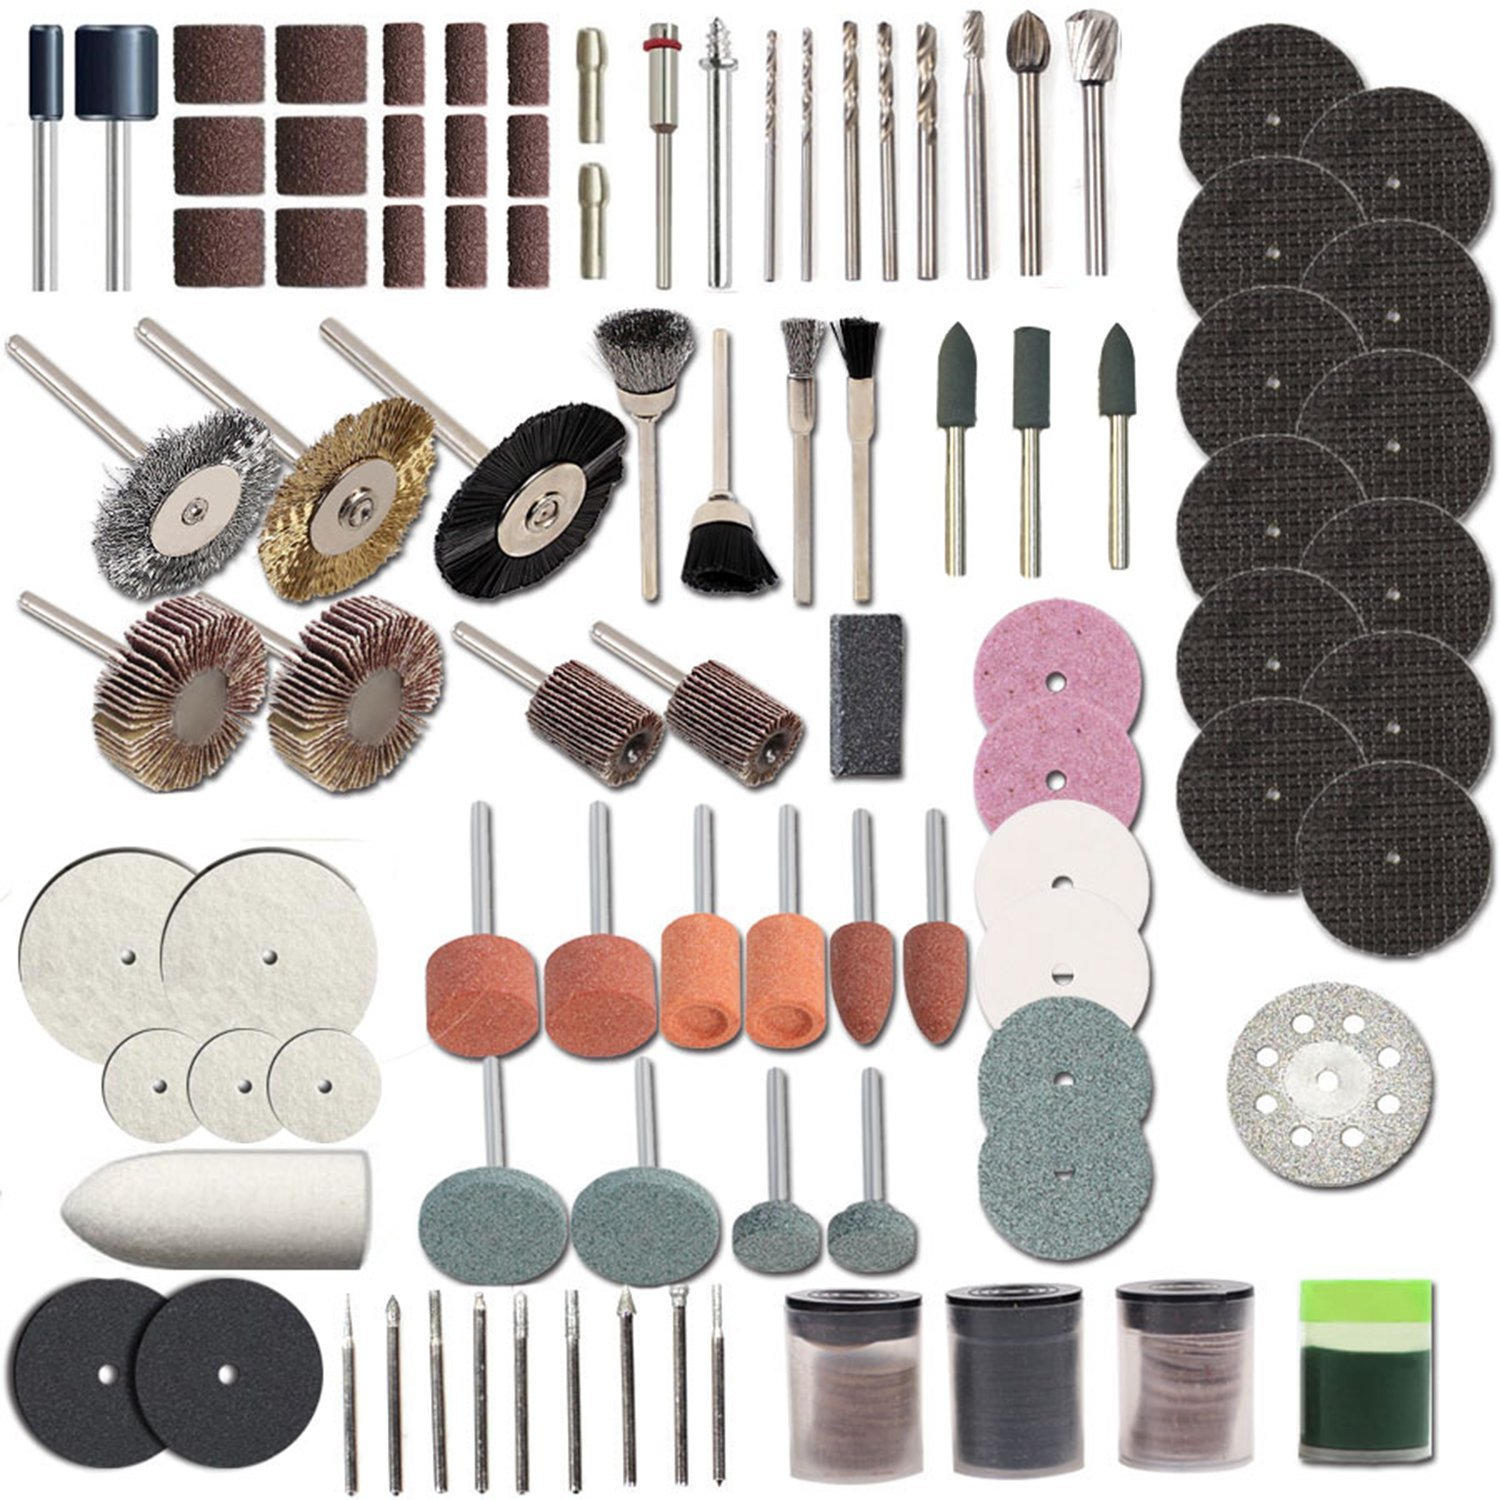 HILDA 248 pcs Rotary Tool Accessories Kit Buffing Wheels Cutting Discs with 1/8 Shank Universal fitment for Polishing Cutting Sanding and Grinding